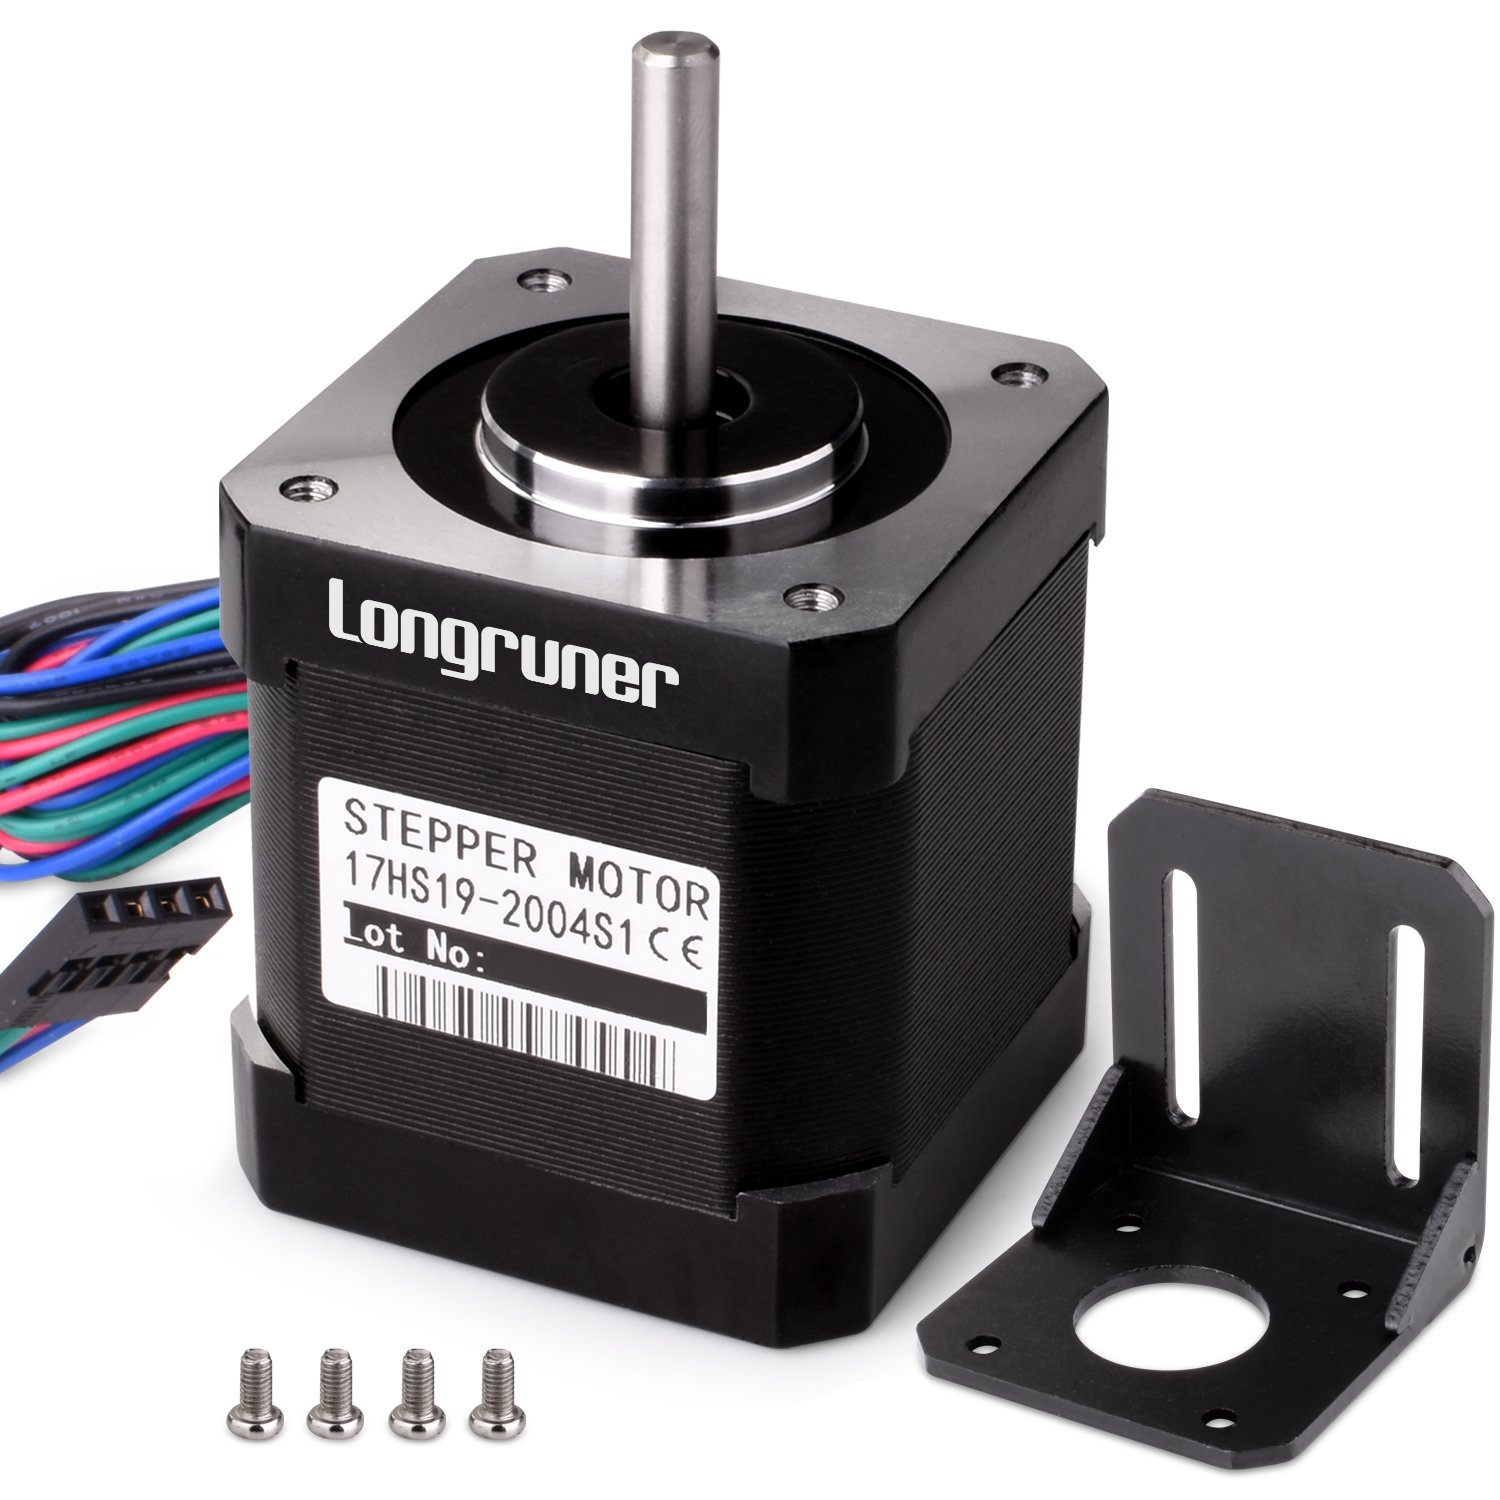 Stepper Motor 12V 0.4A Lead 3D Pr 26Ncm Longruner Nema 17 Bipolar 42mm 37oz.in